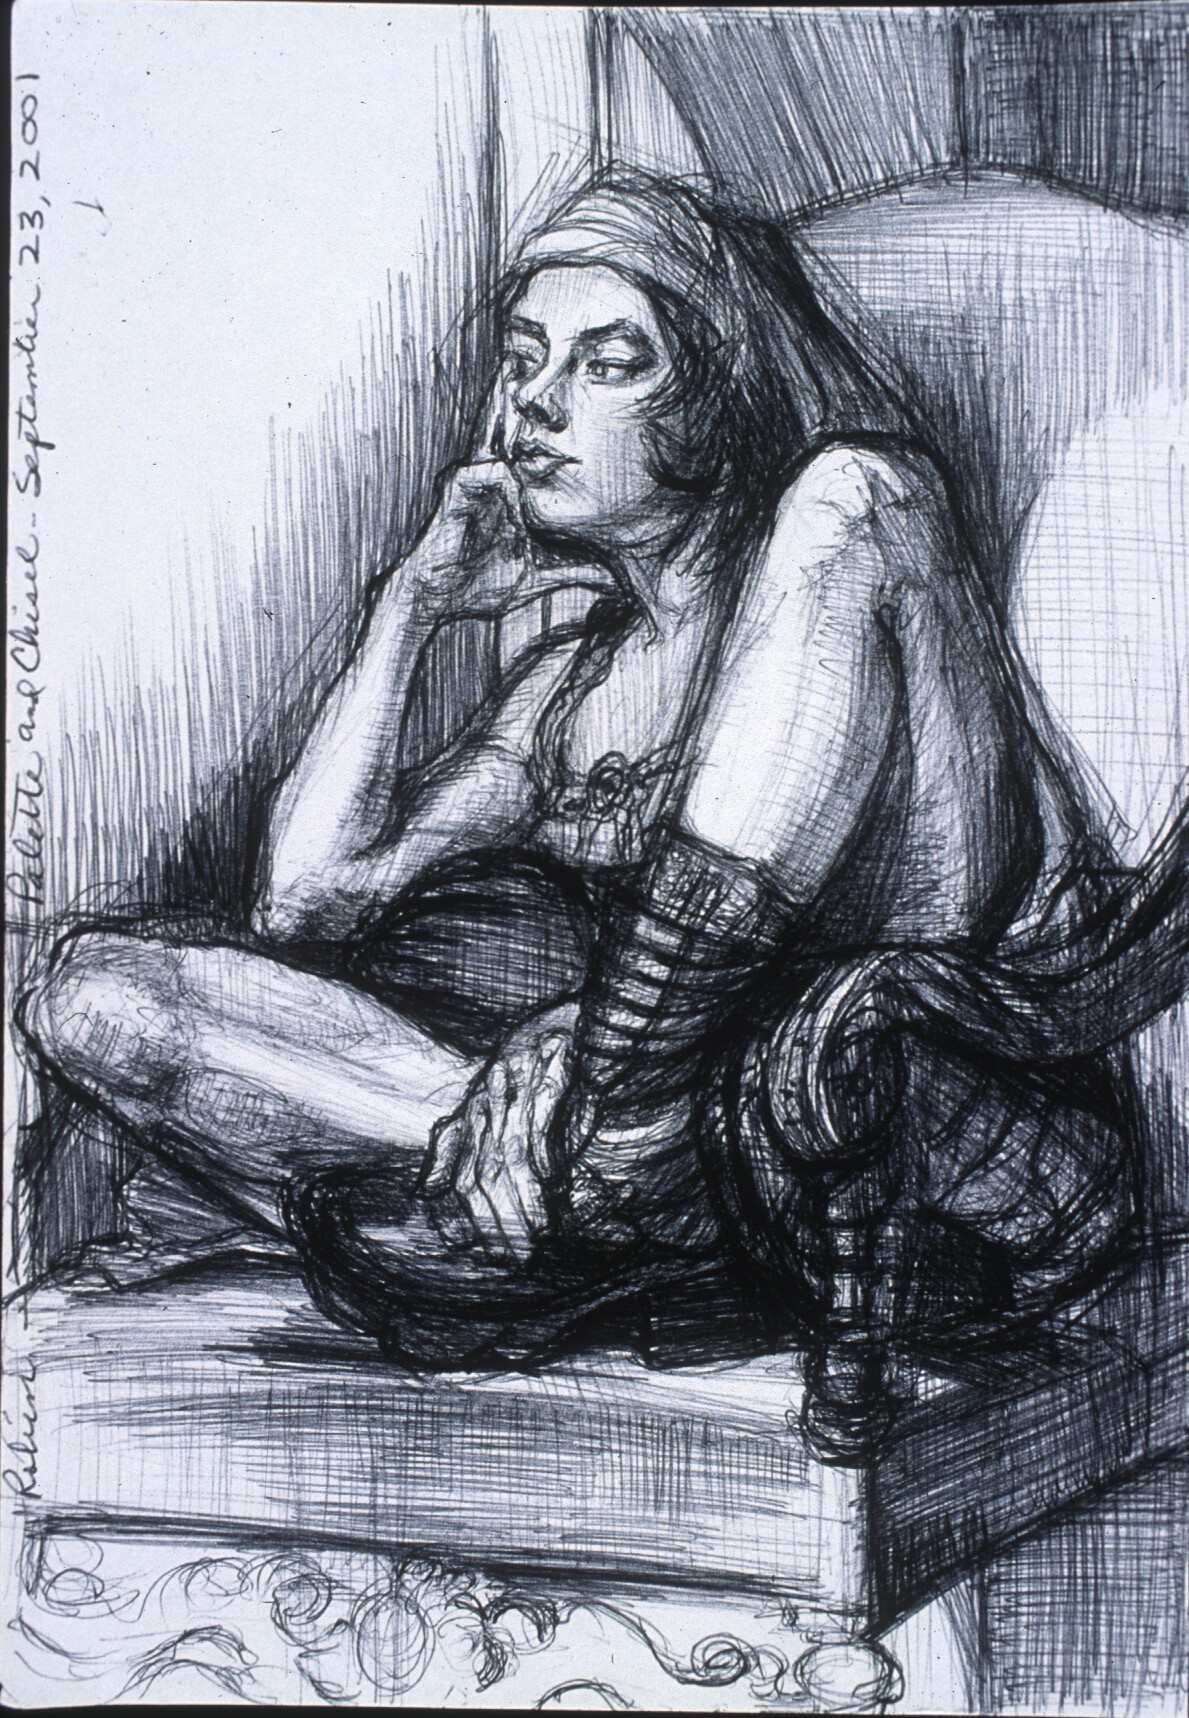 """Lou Ann Burkhardt  Robin   , 2001 Pen and ink on paper 16-1/2"""" x 13-1/2"""" framed Giclee prints available, priced by size"""